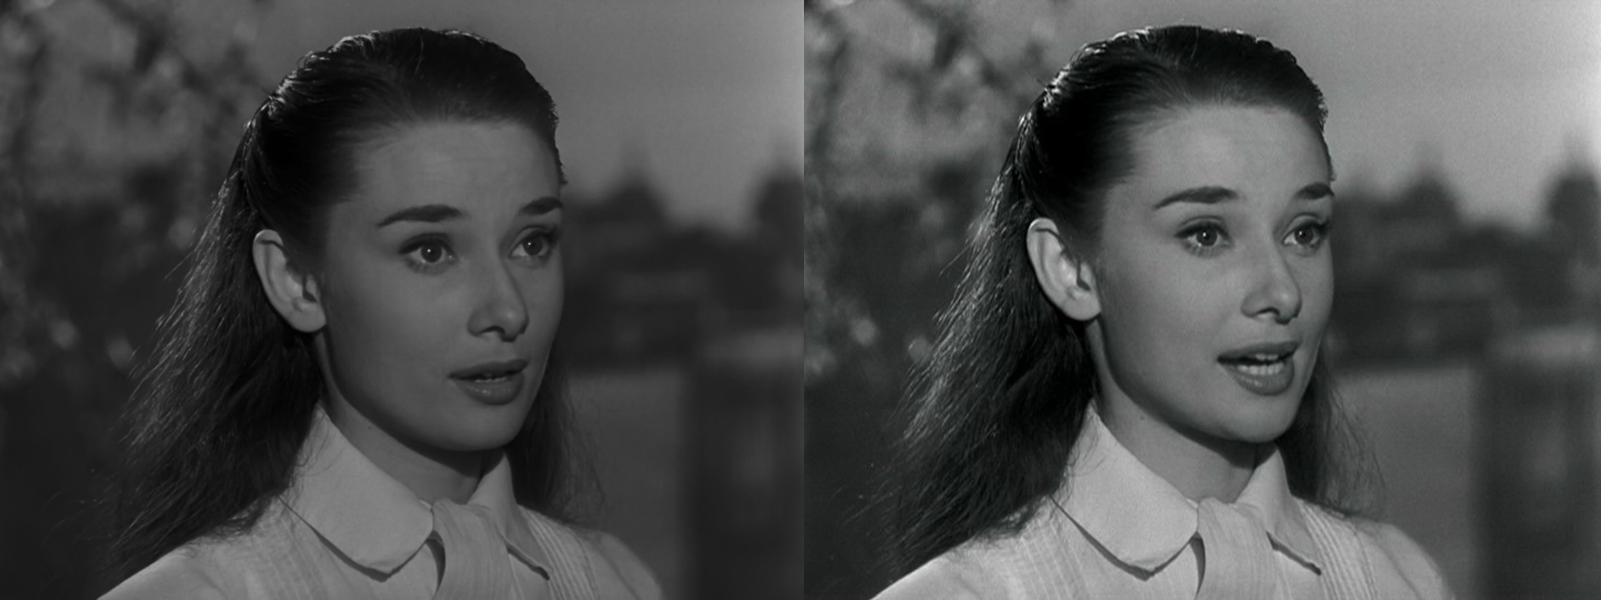 Roman Holiday on iTunes HD Review - Not on Blu-ray